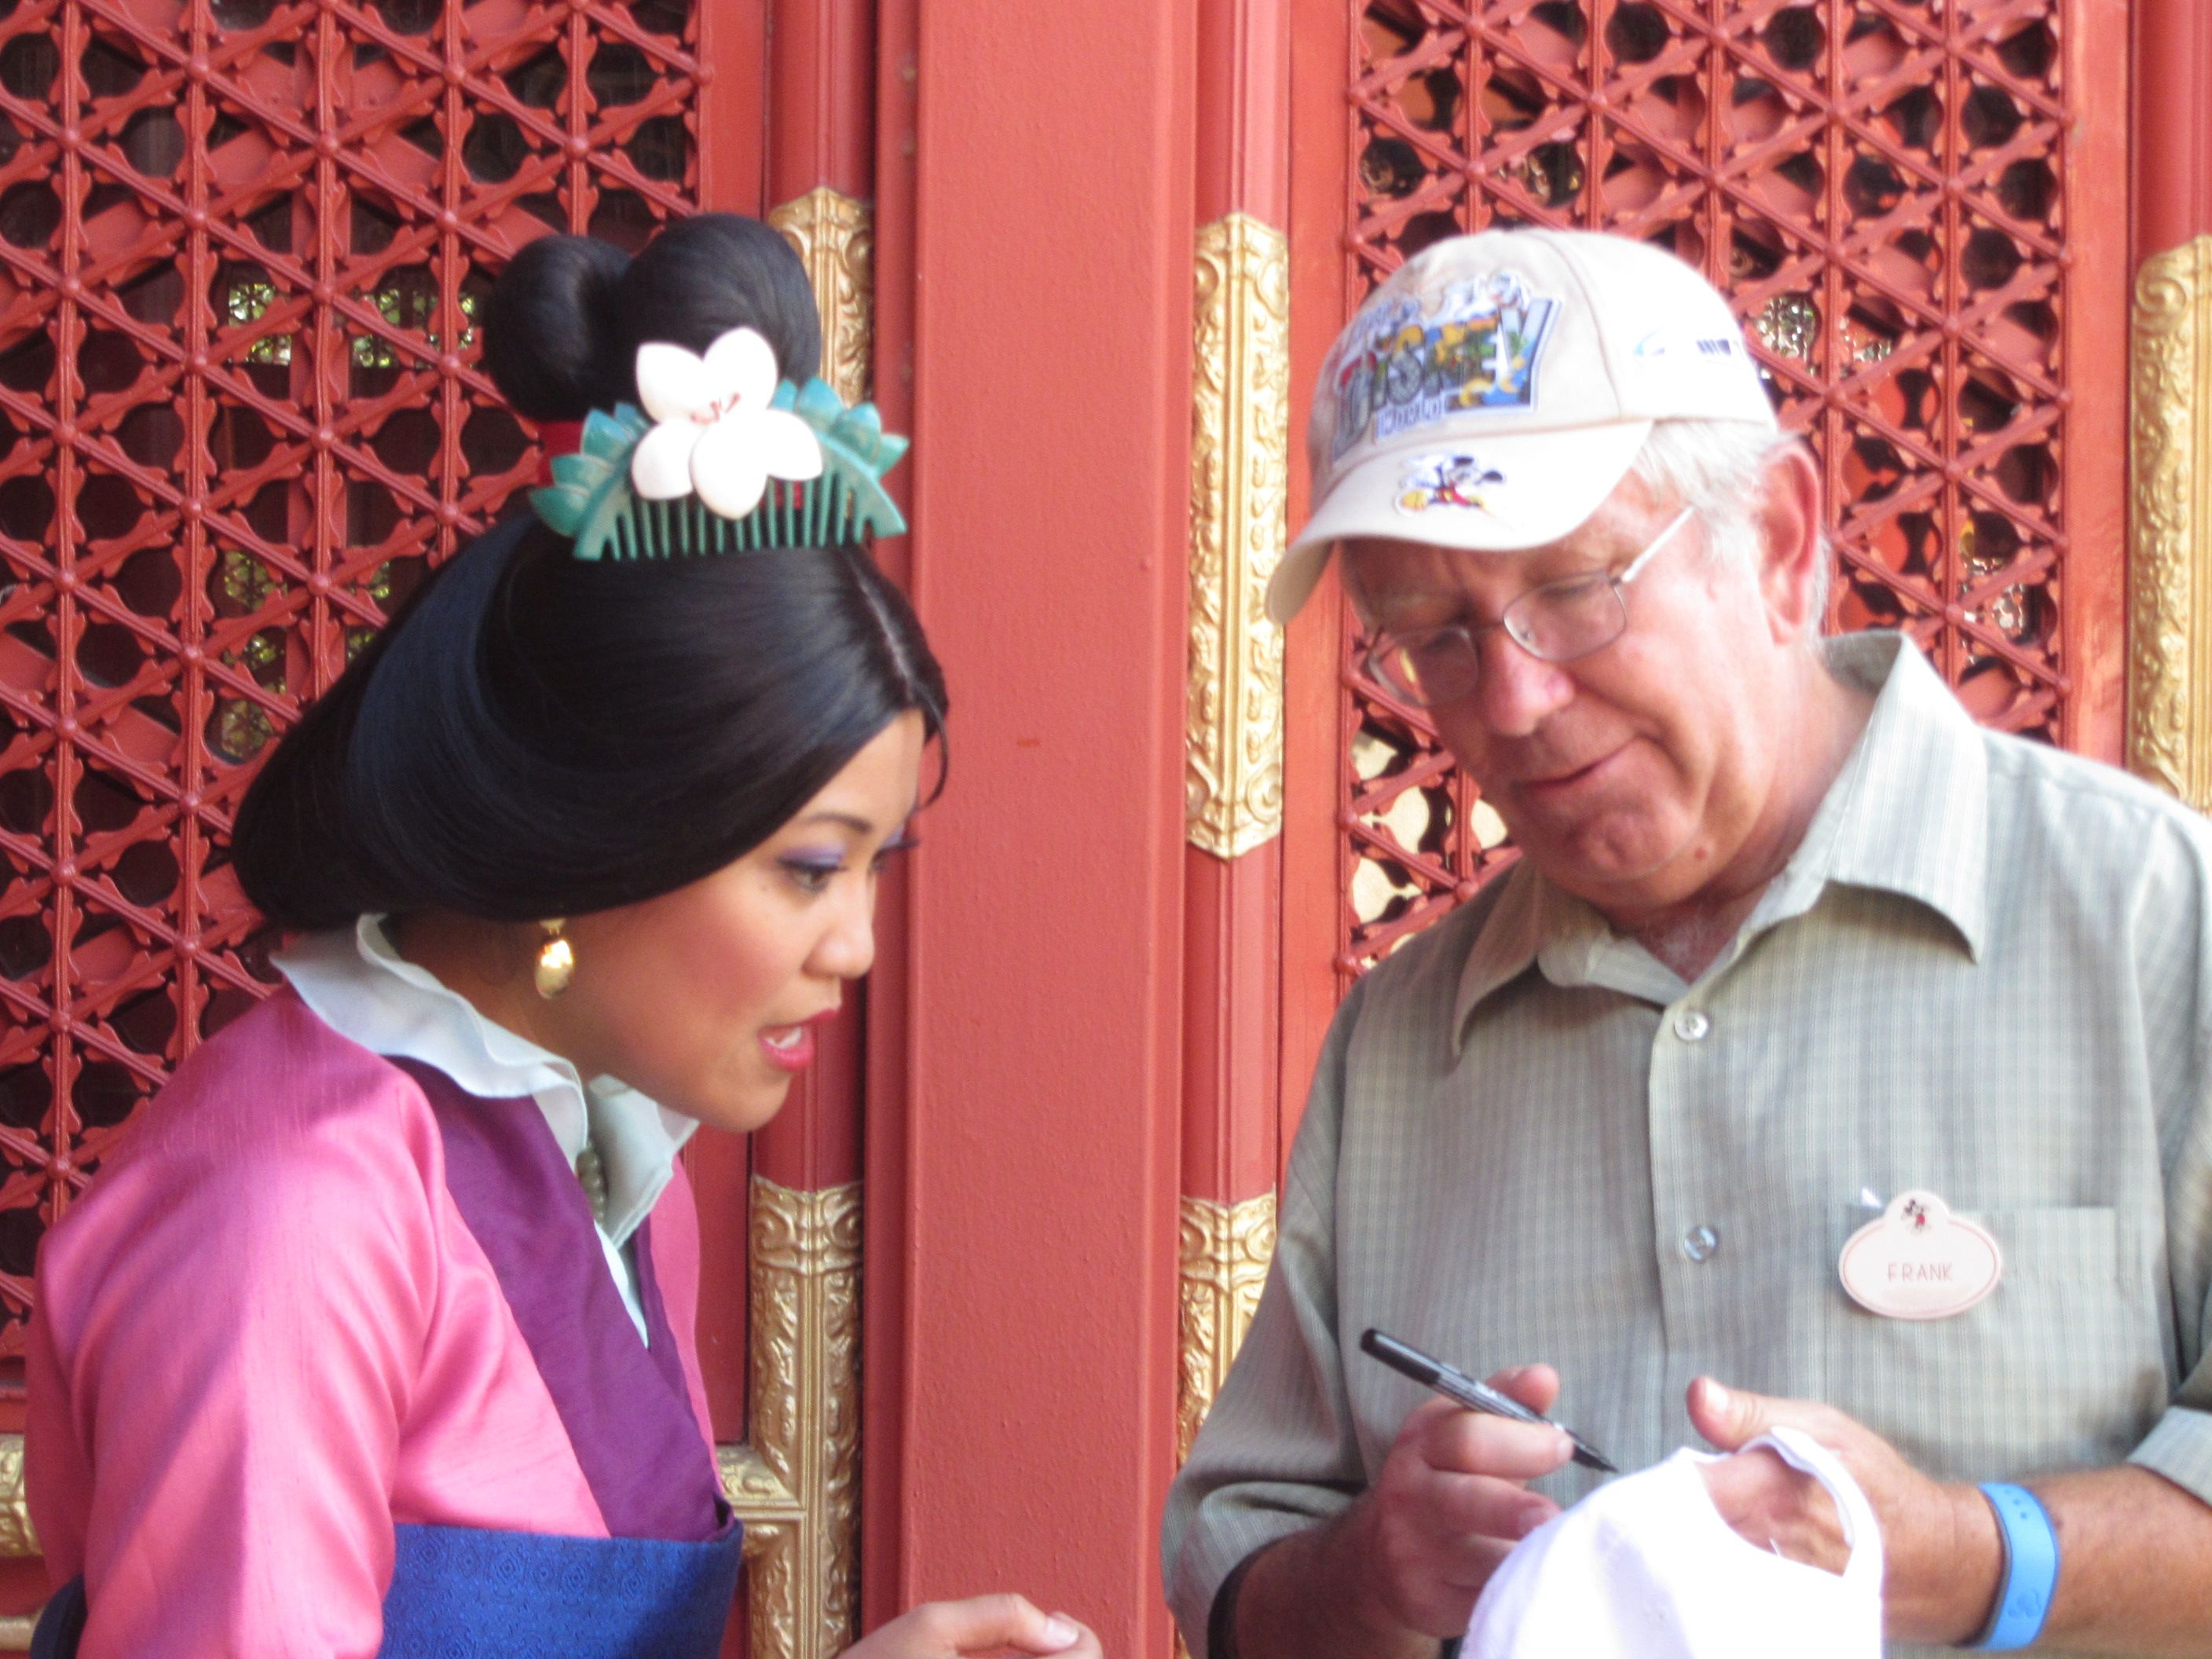 November 2013 Food Wine Festival Character Autographs Mulan Wine Festival Wine Recipes Disney Side